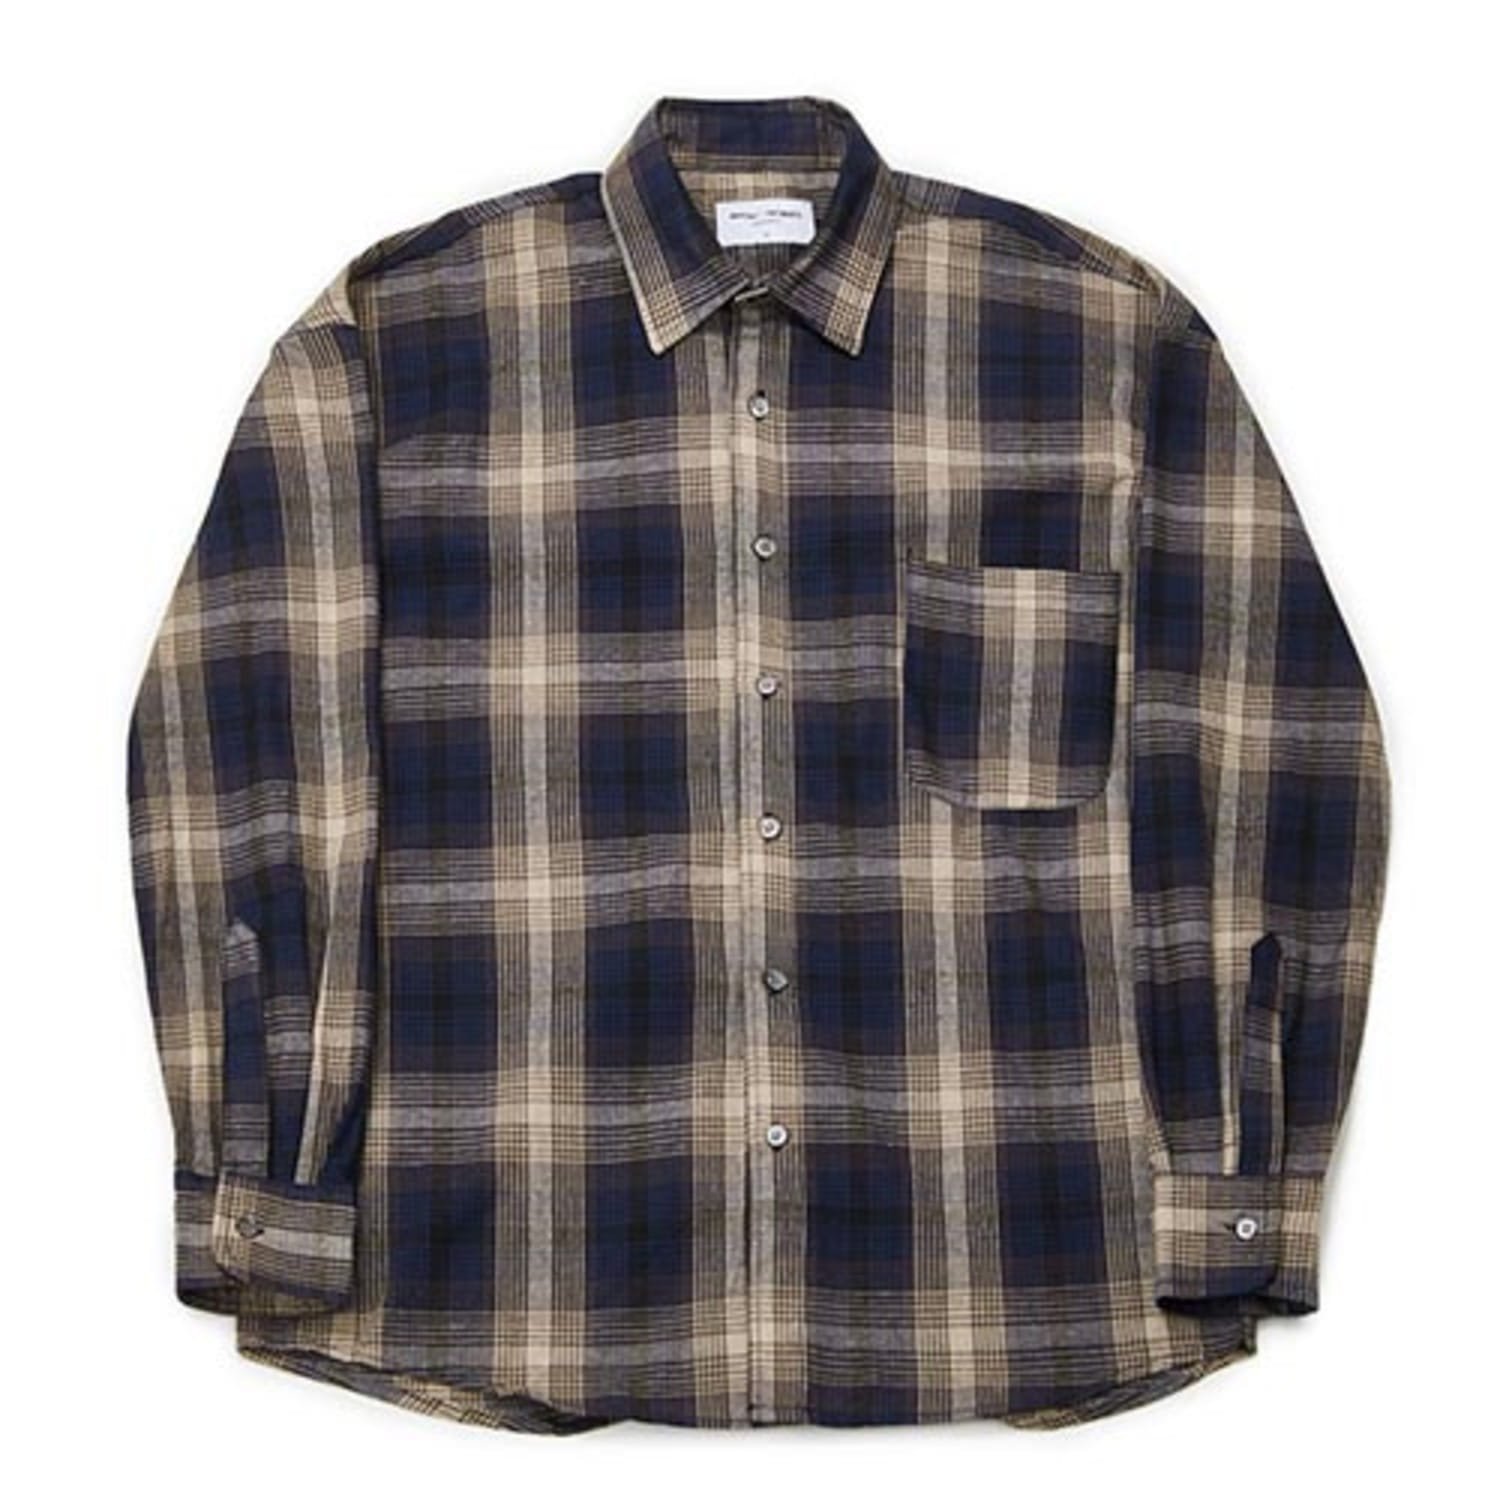 [PARTIMENTO x 86]Semiover Plaid Check Shirts (Navy)(20%SALE)